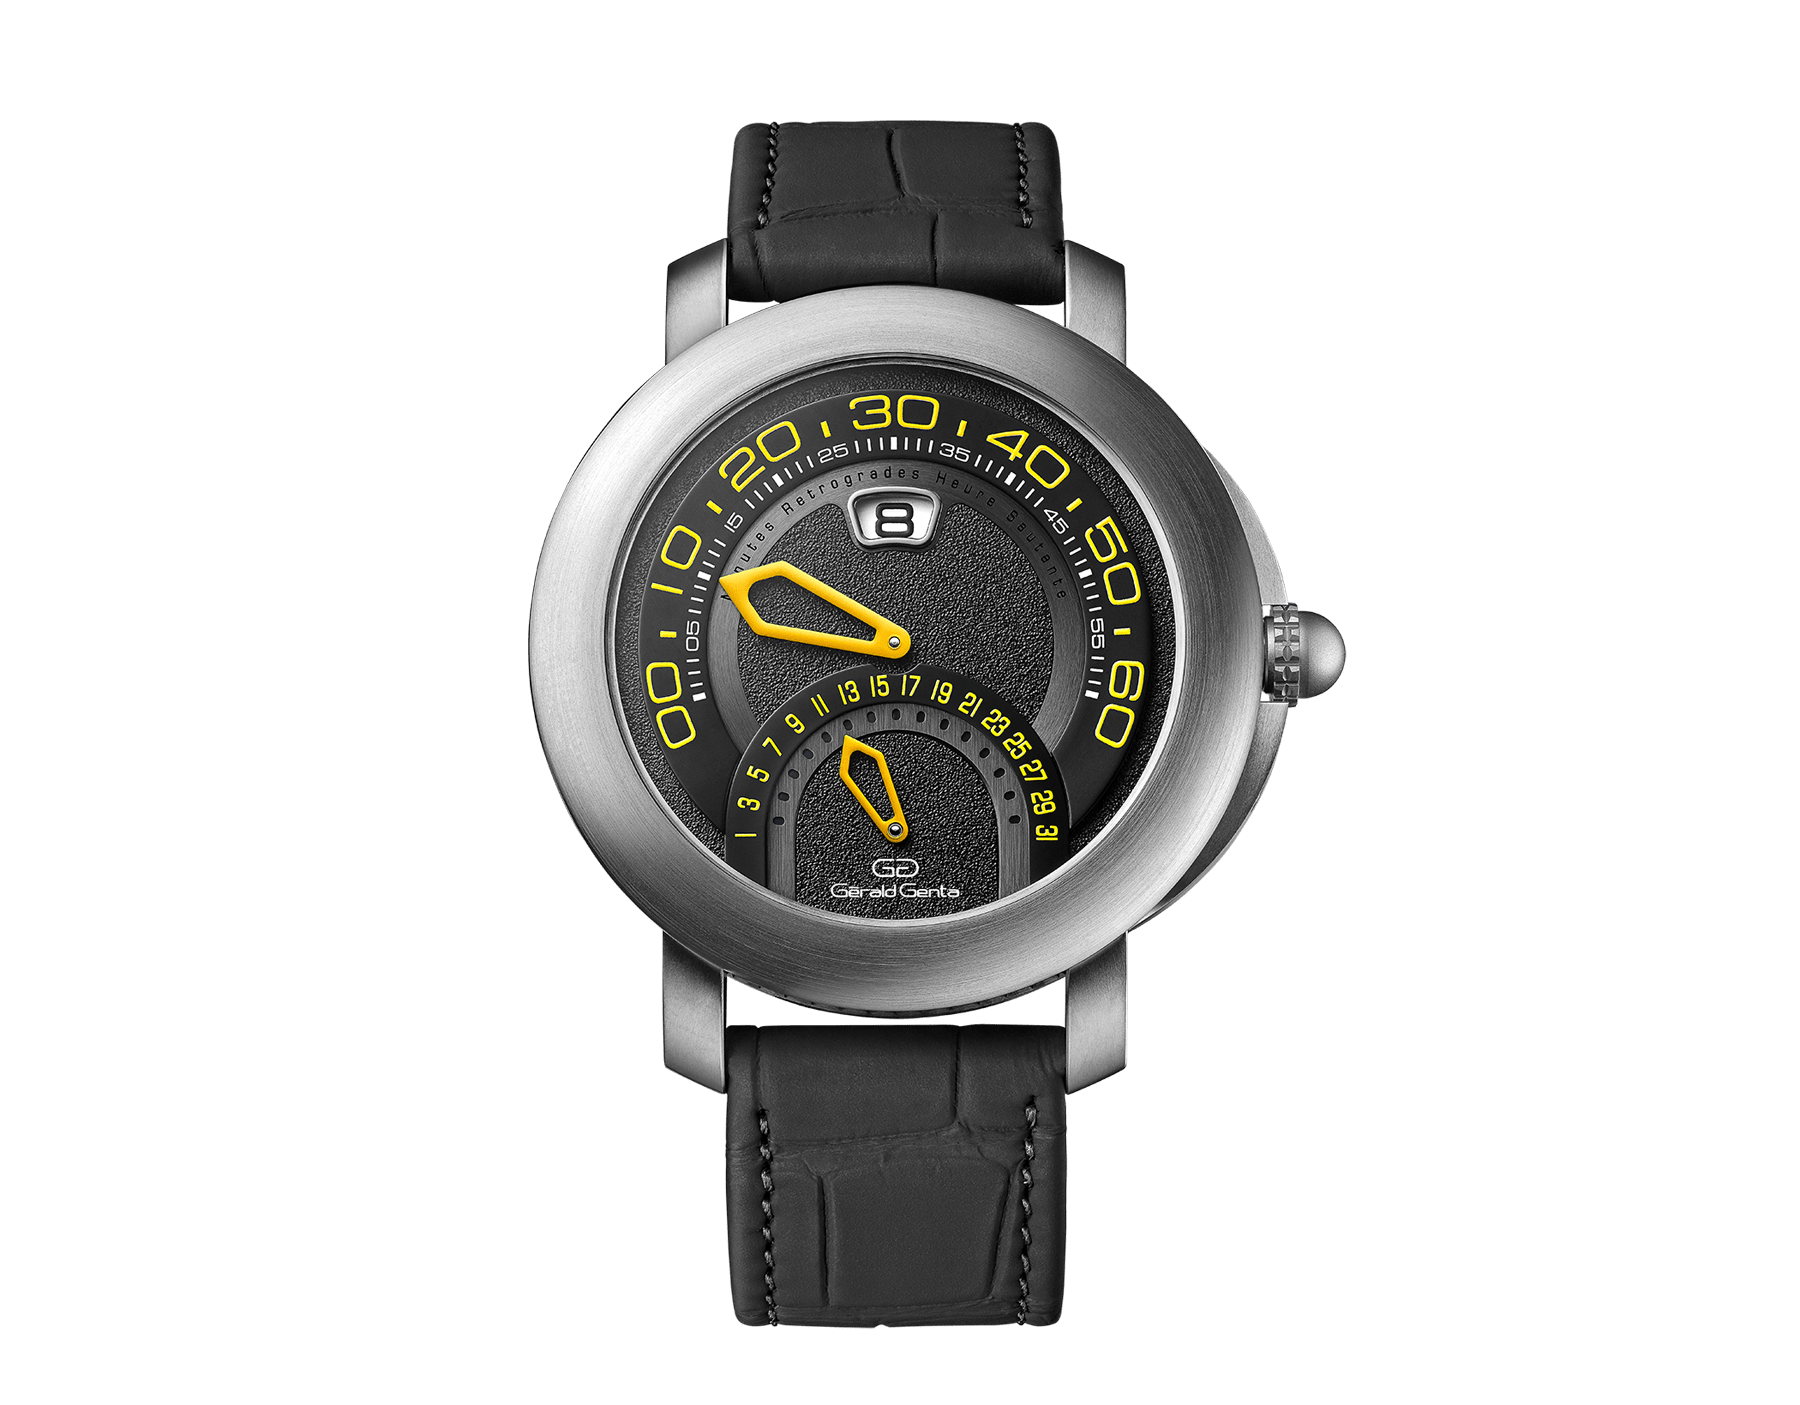 Gérald Genta Arena Bi-Retro Sport watch with mechanical manufacture movement, automatic bidirectional winding, jumping hours, retrograde minutes (210°) and date (180°), 43 mm brushed titanium case, black and anthracite dial and matte black alligator bracelet. Water-resistant up to 100 meters 103448 image 1